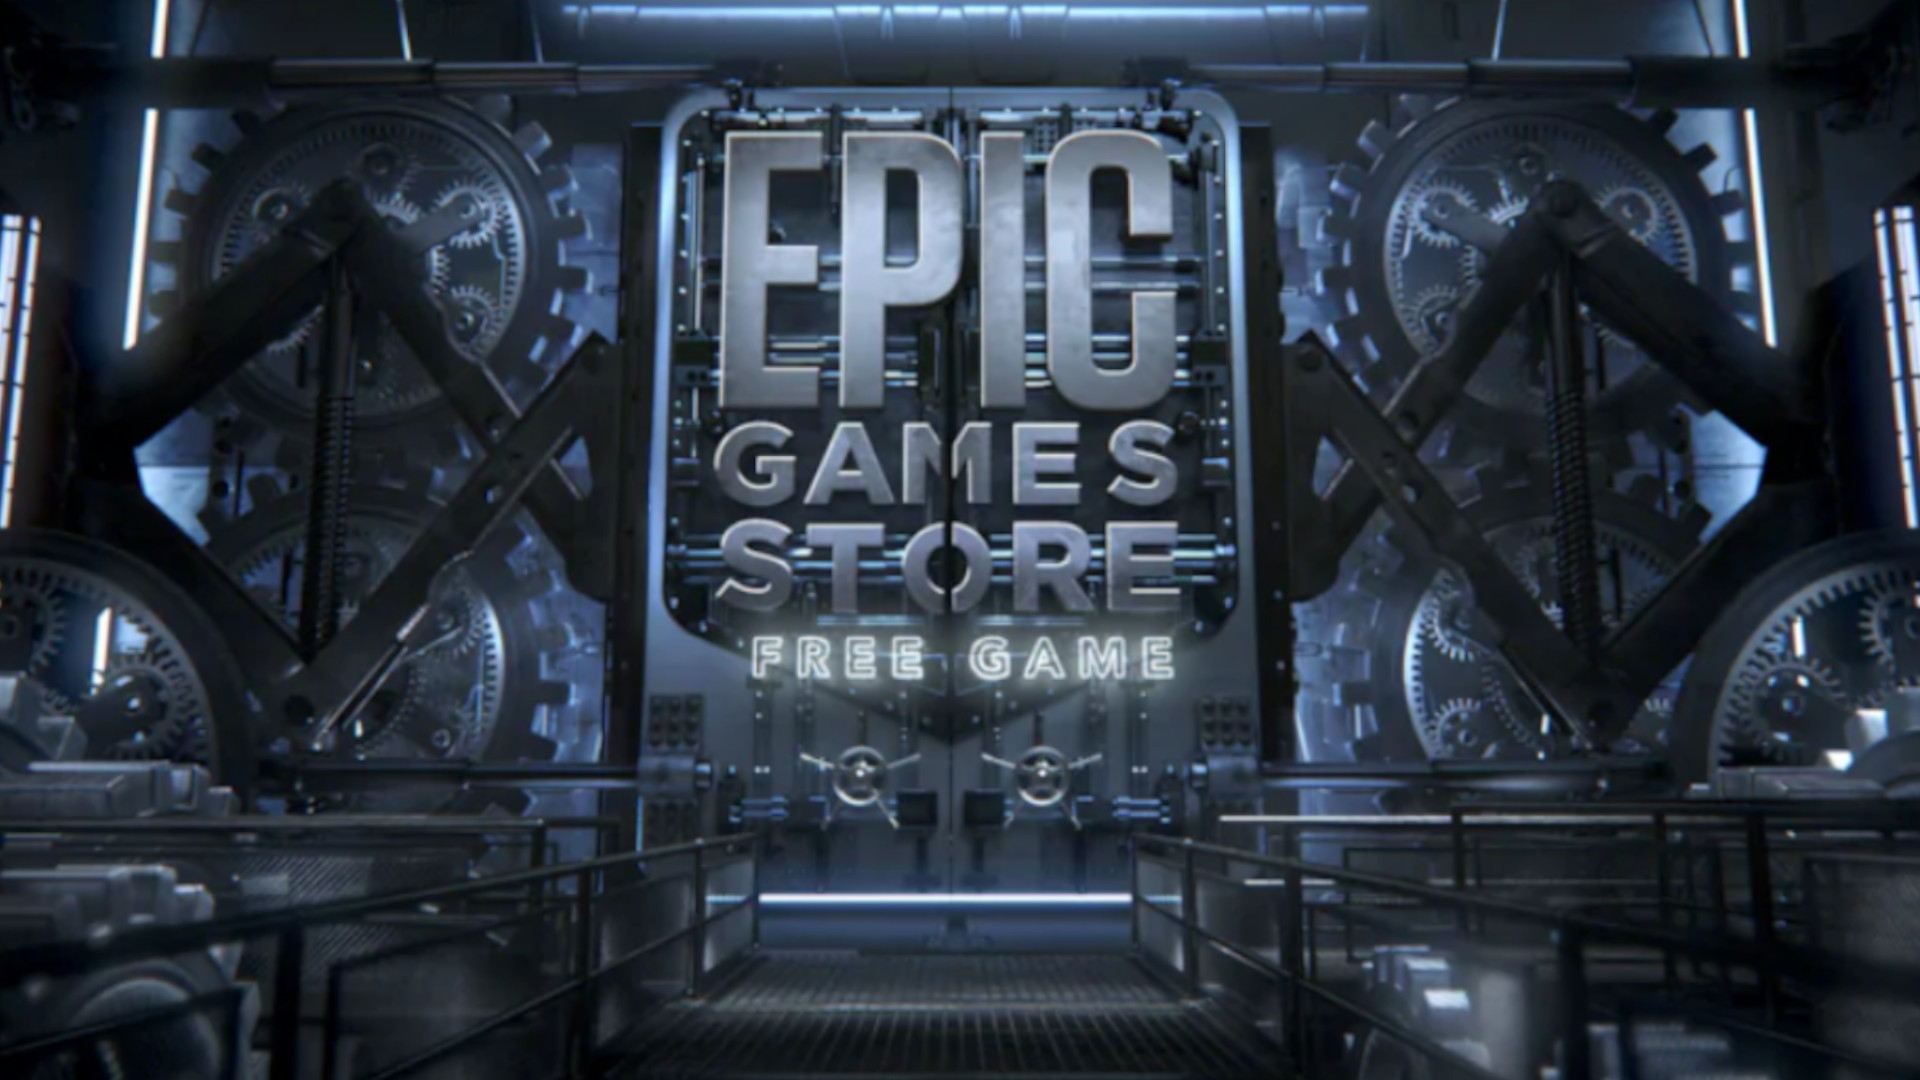 Epic is starting E3 2021 (in spirit) this week